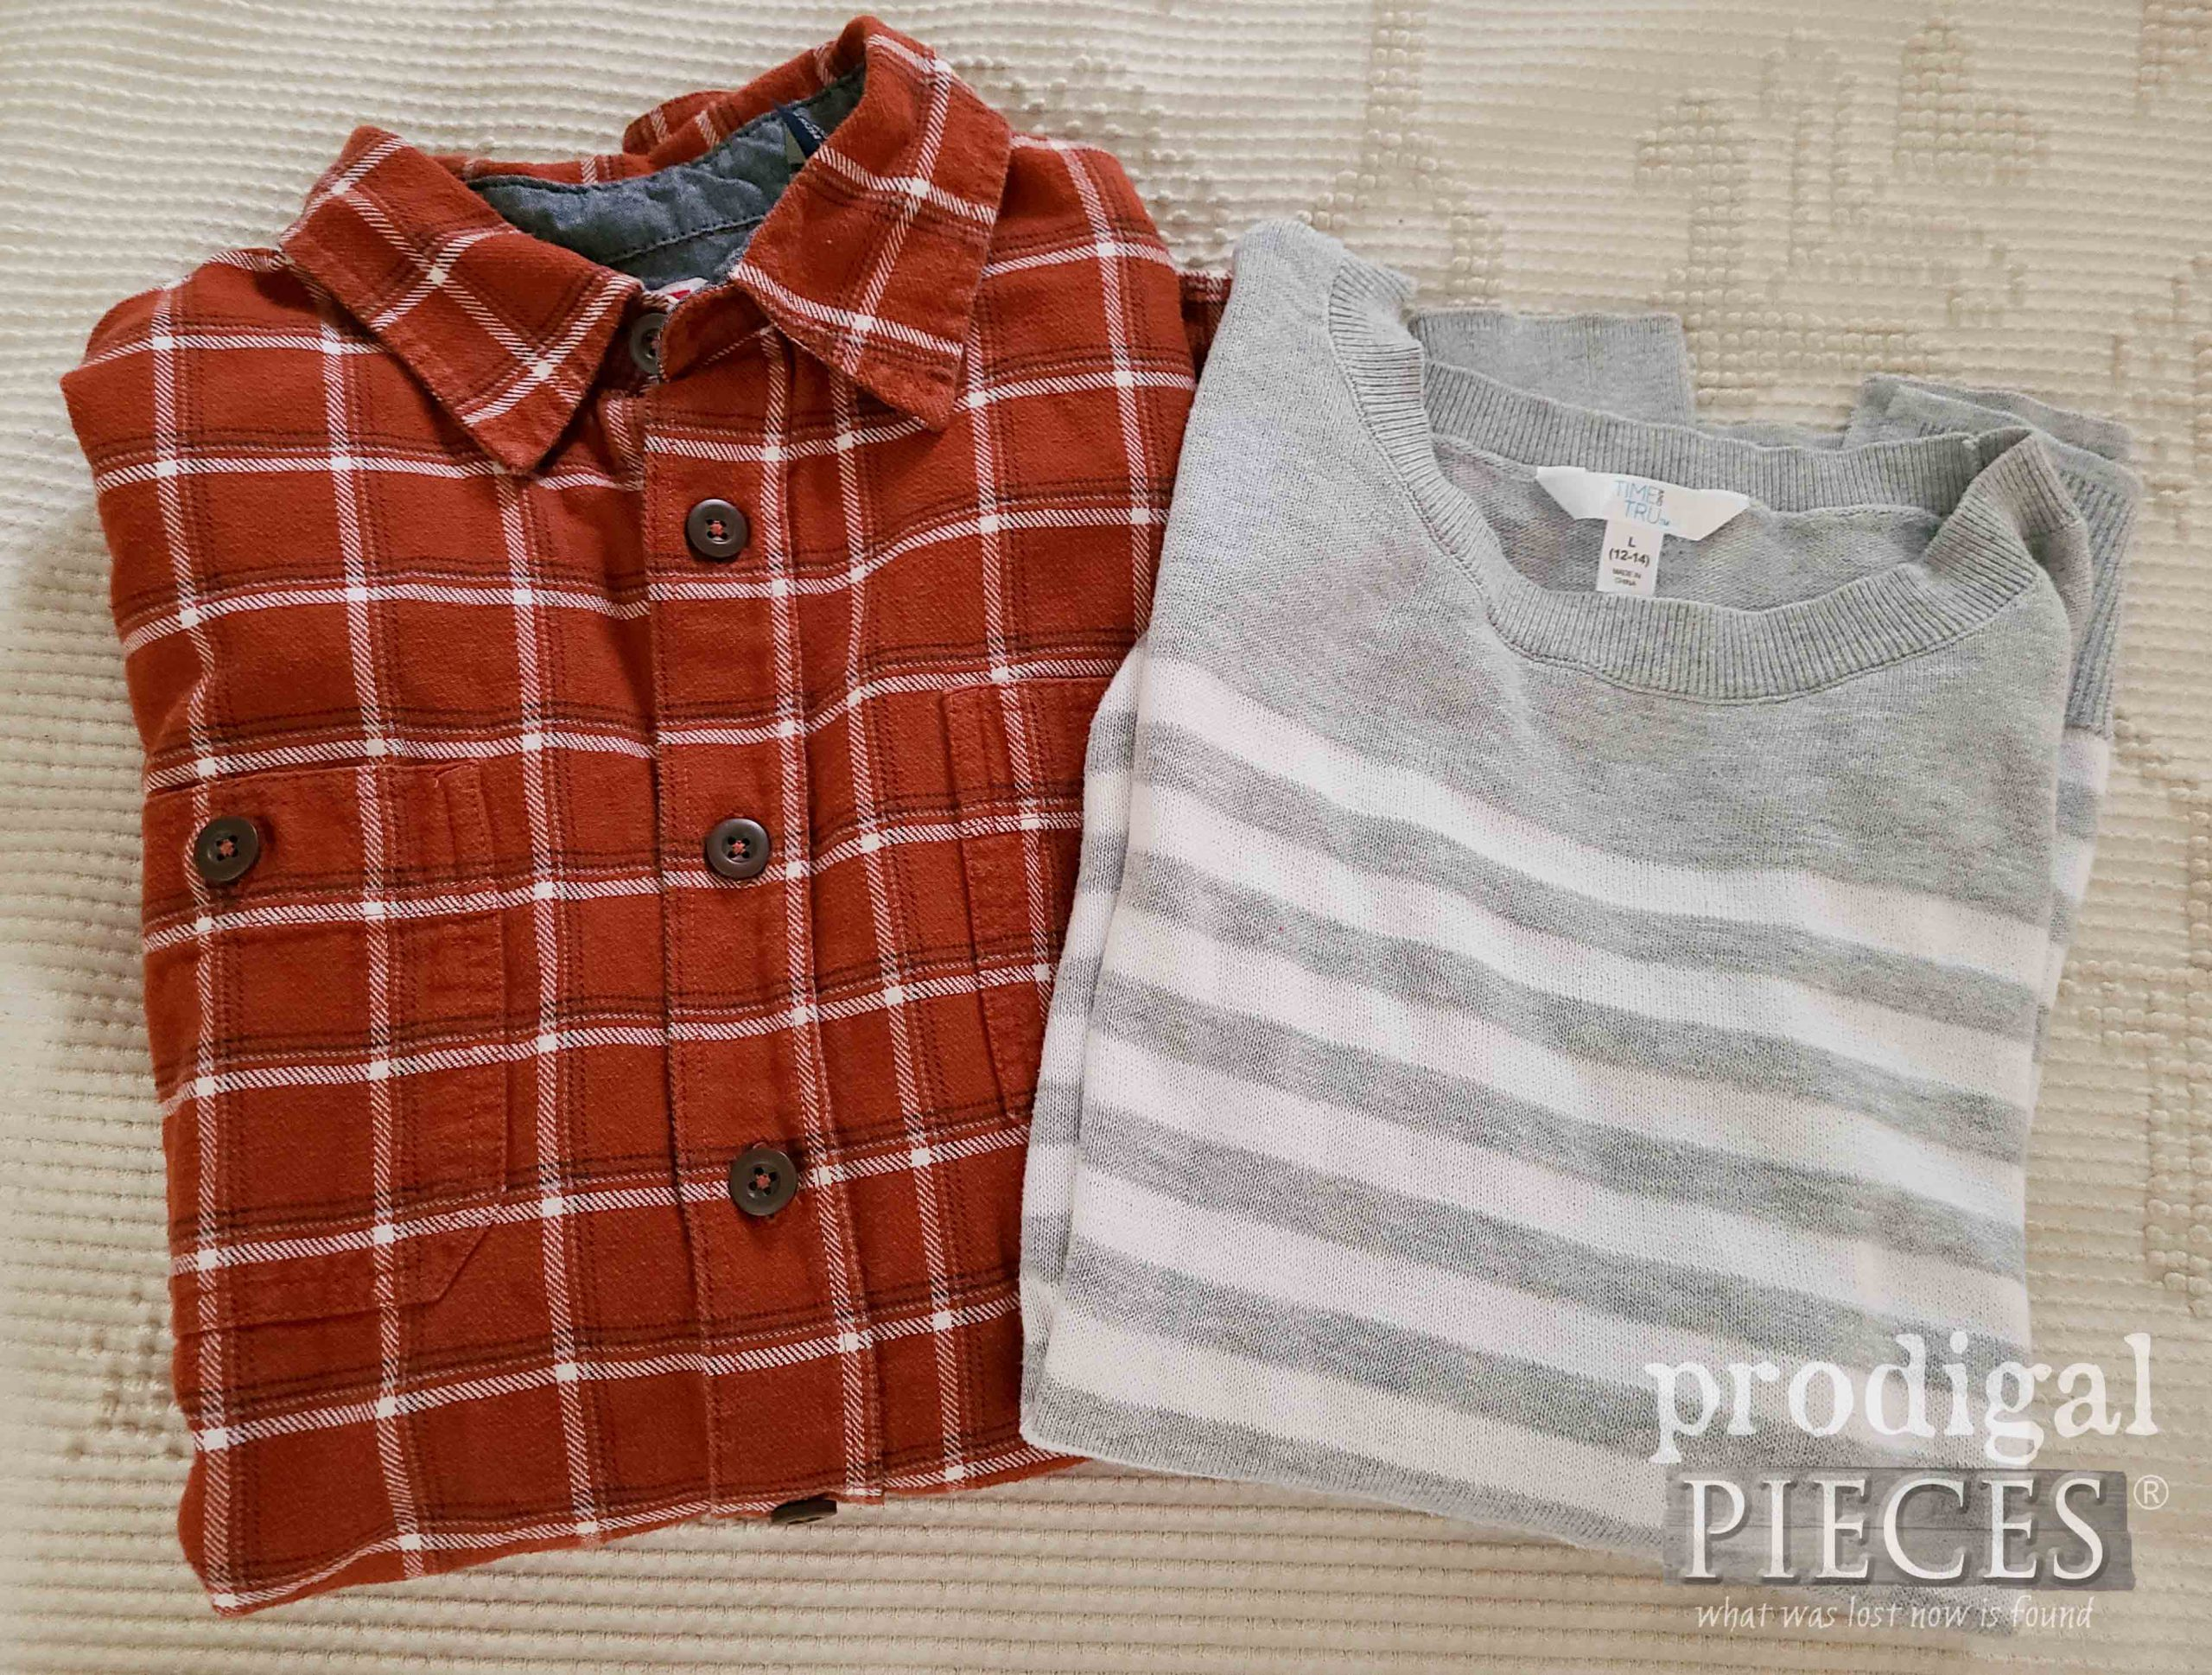 Shirt & Sweater for Making Upcycled Shirt Pocket Pillow | by Prodigal Pieces | prodigalpieces.com